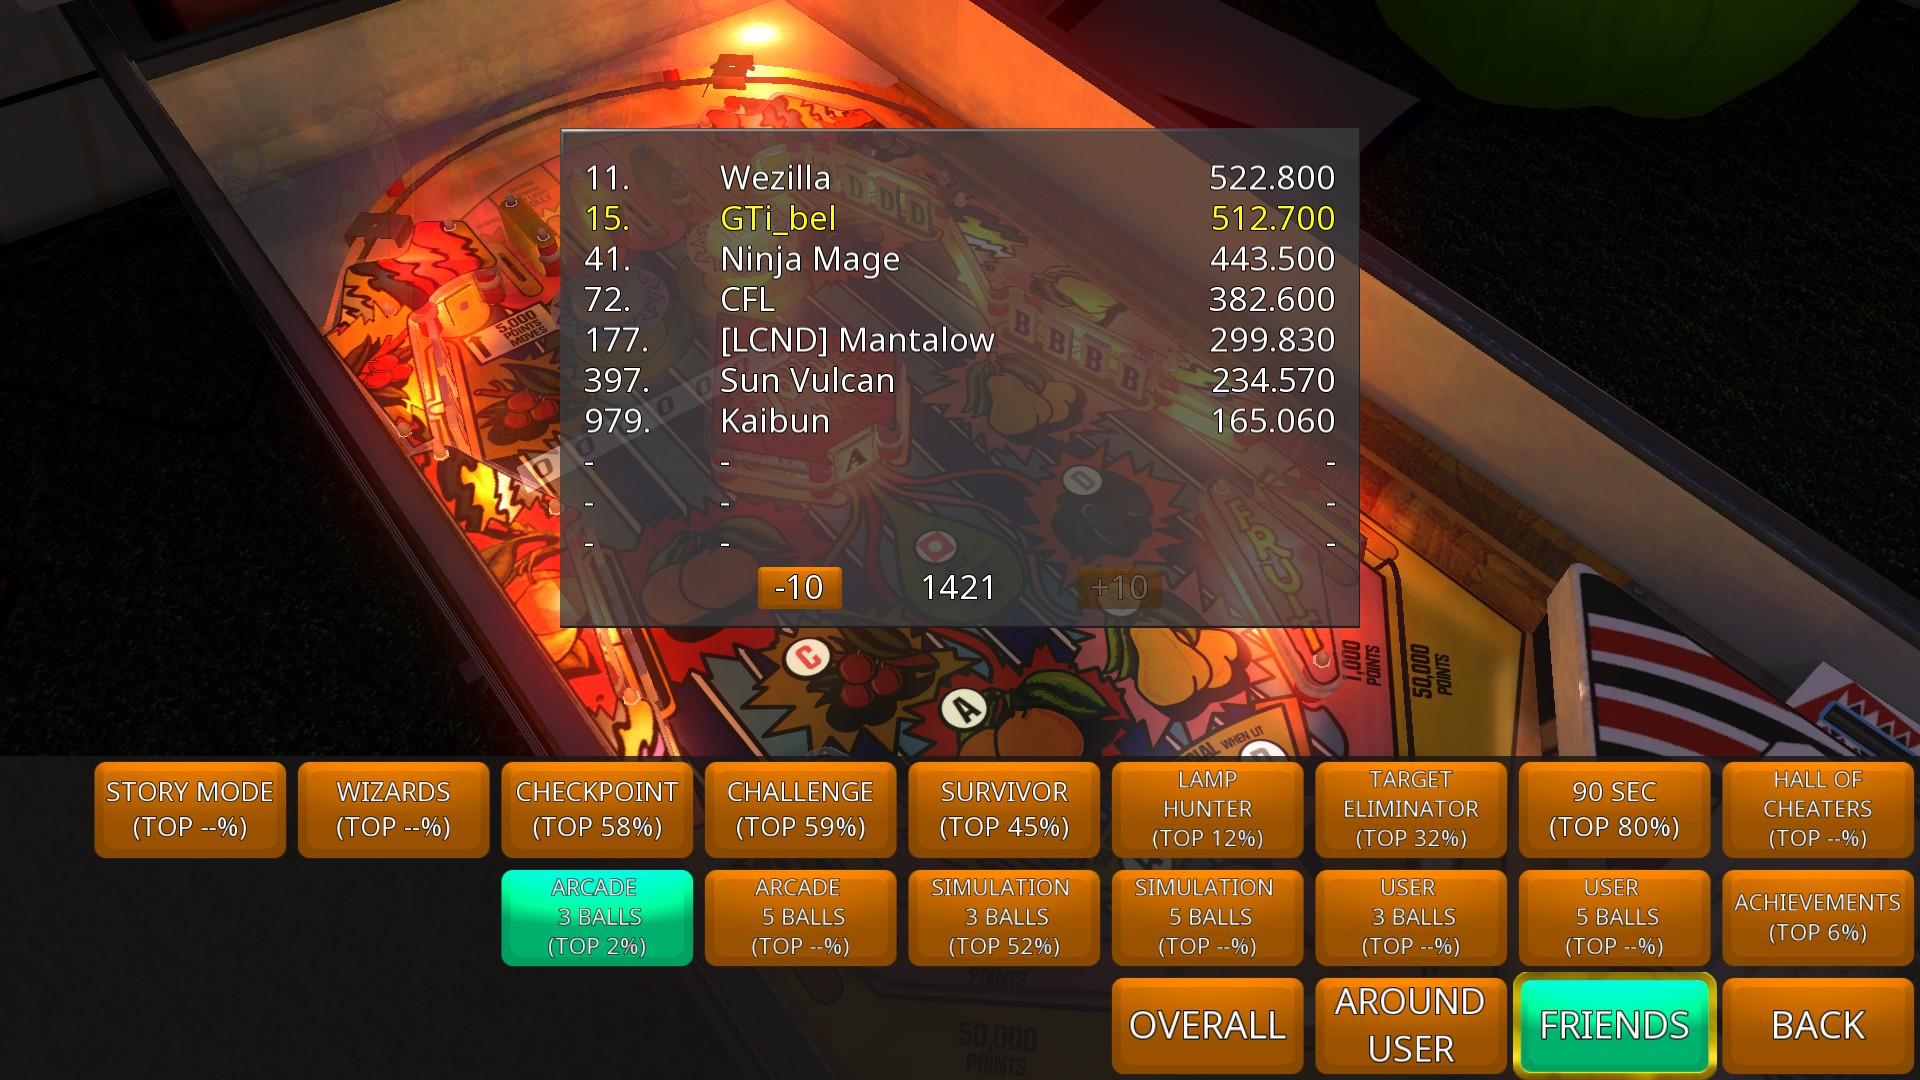 GTibel: Zaccaria Pinball: Lucky Fruit [3 balls] (PC) 512,700 points on 2018-07-27 10:10:23